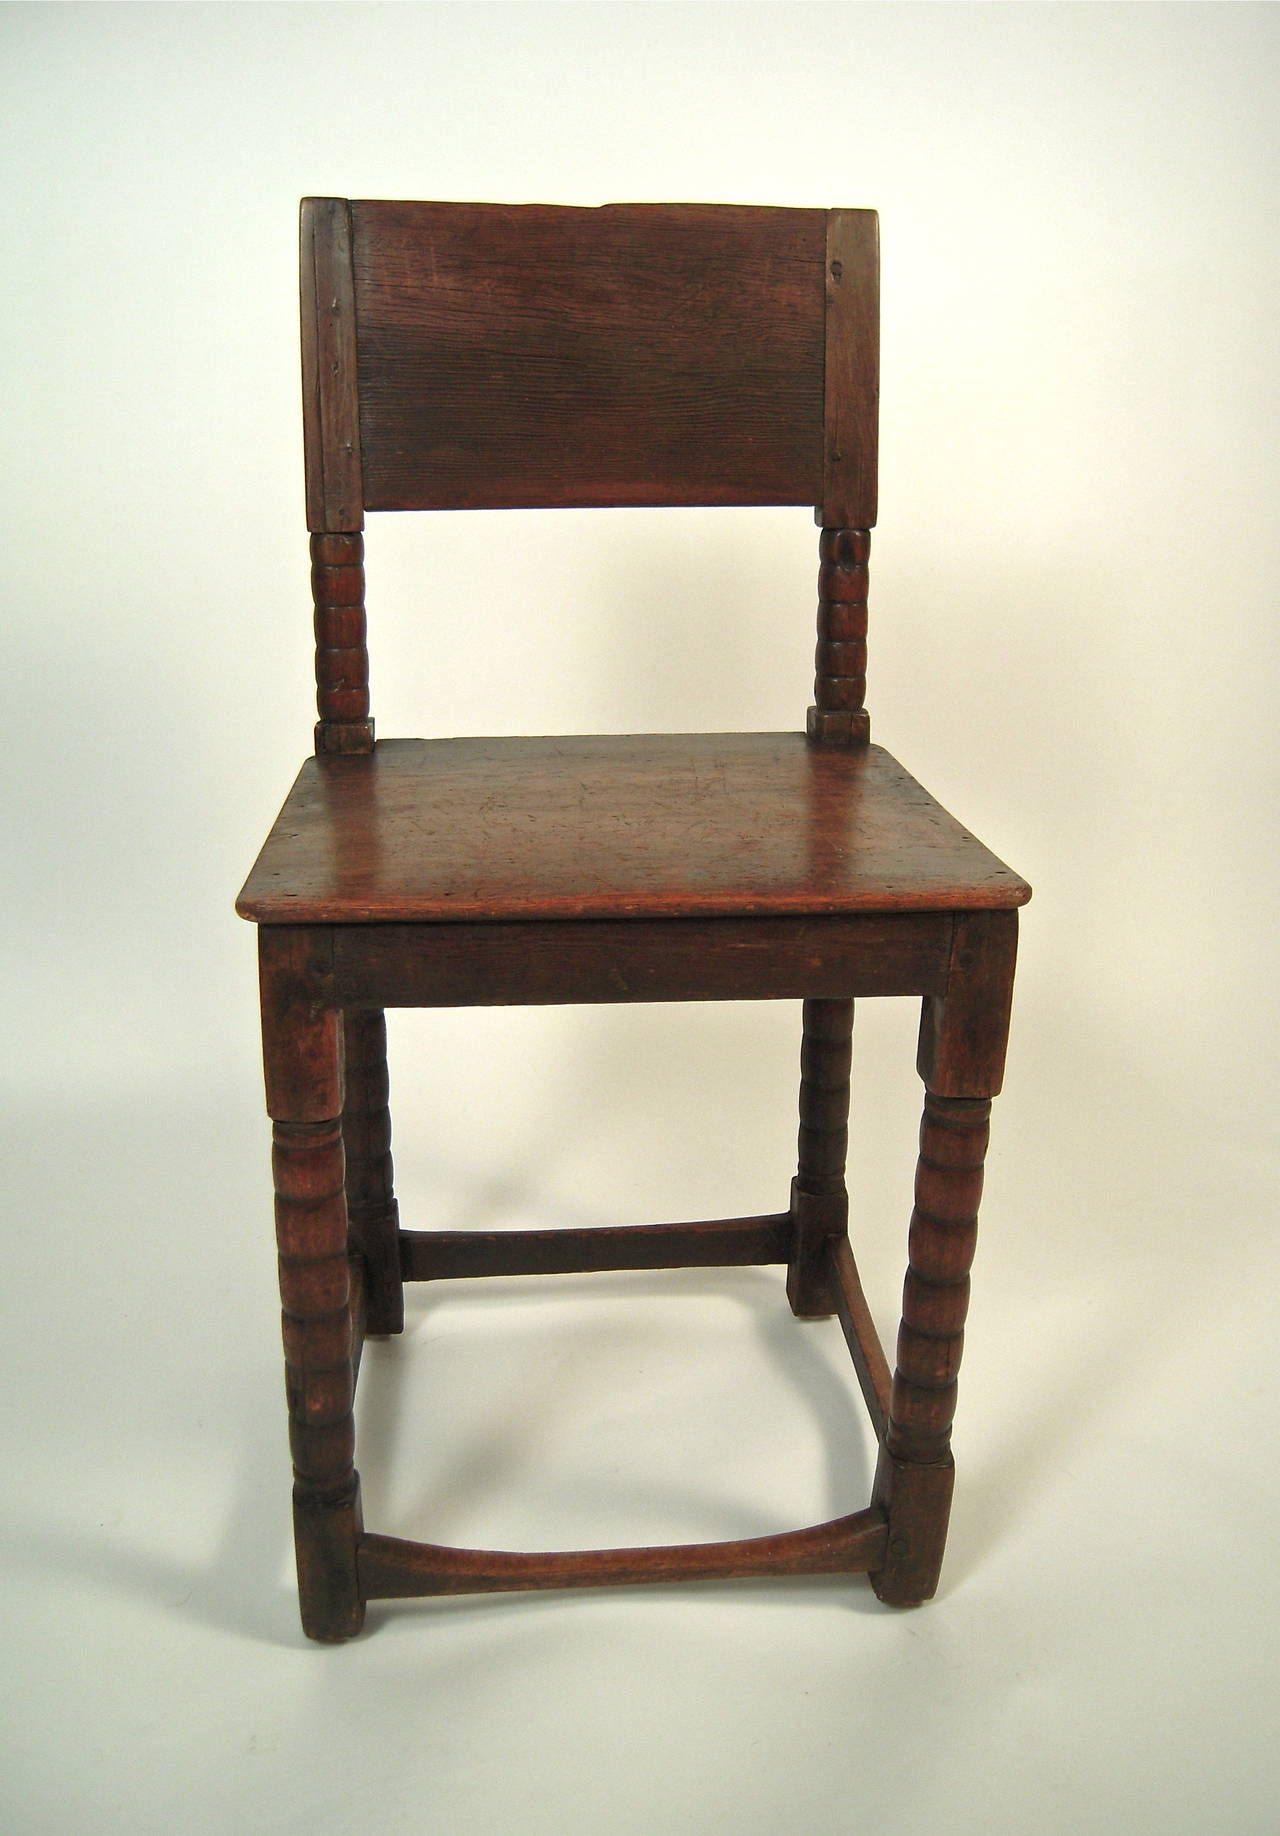 posture leather chair cheap silver spandex covers for sale 17th century english cromwellian at 1stdibs